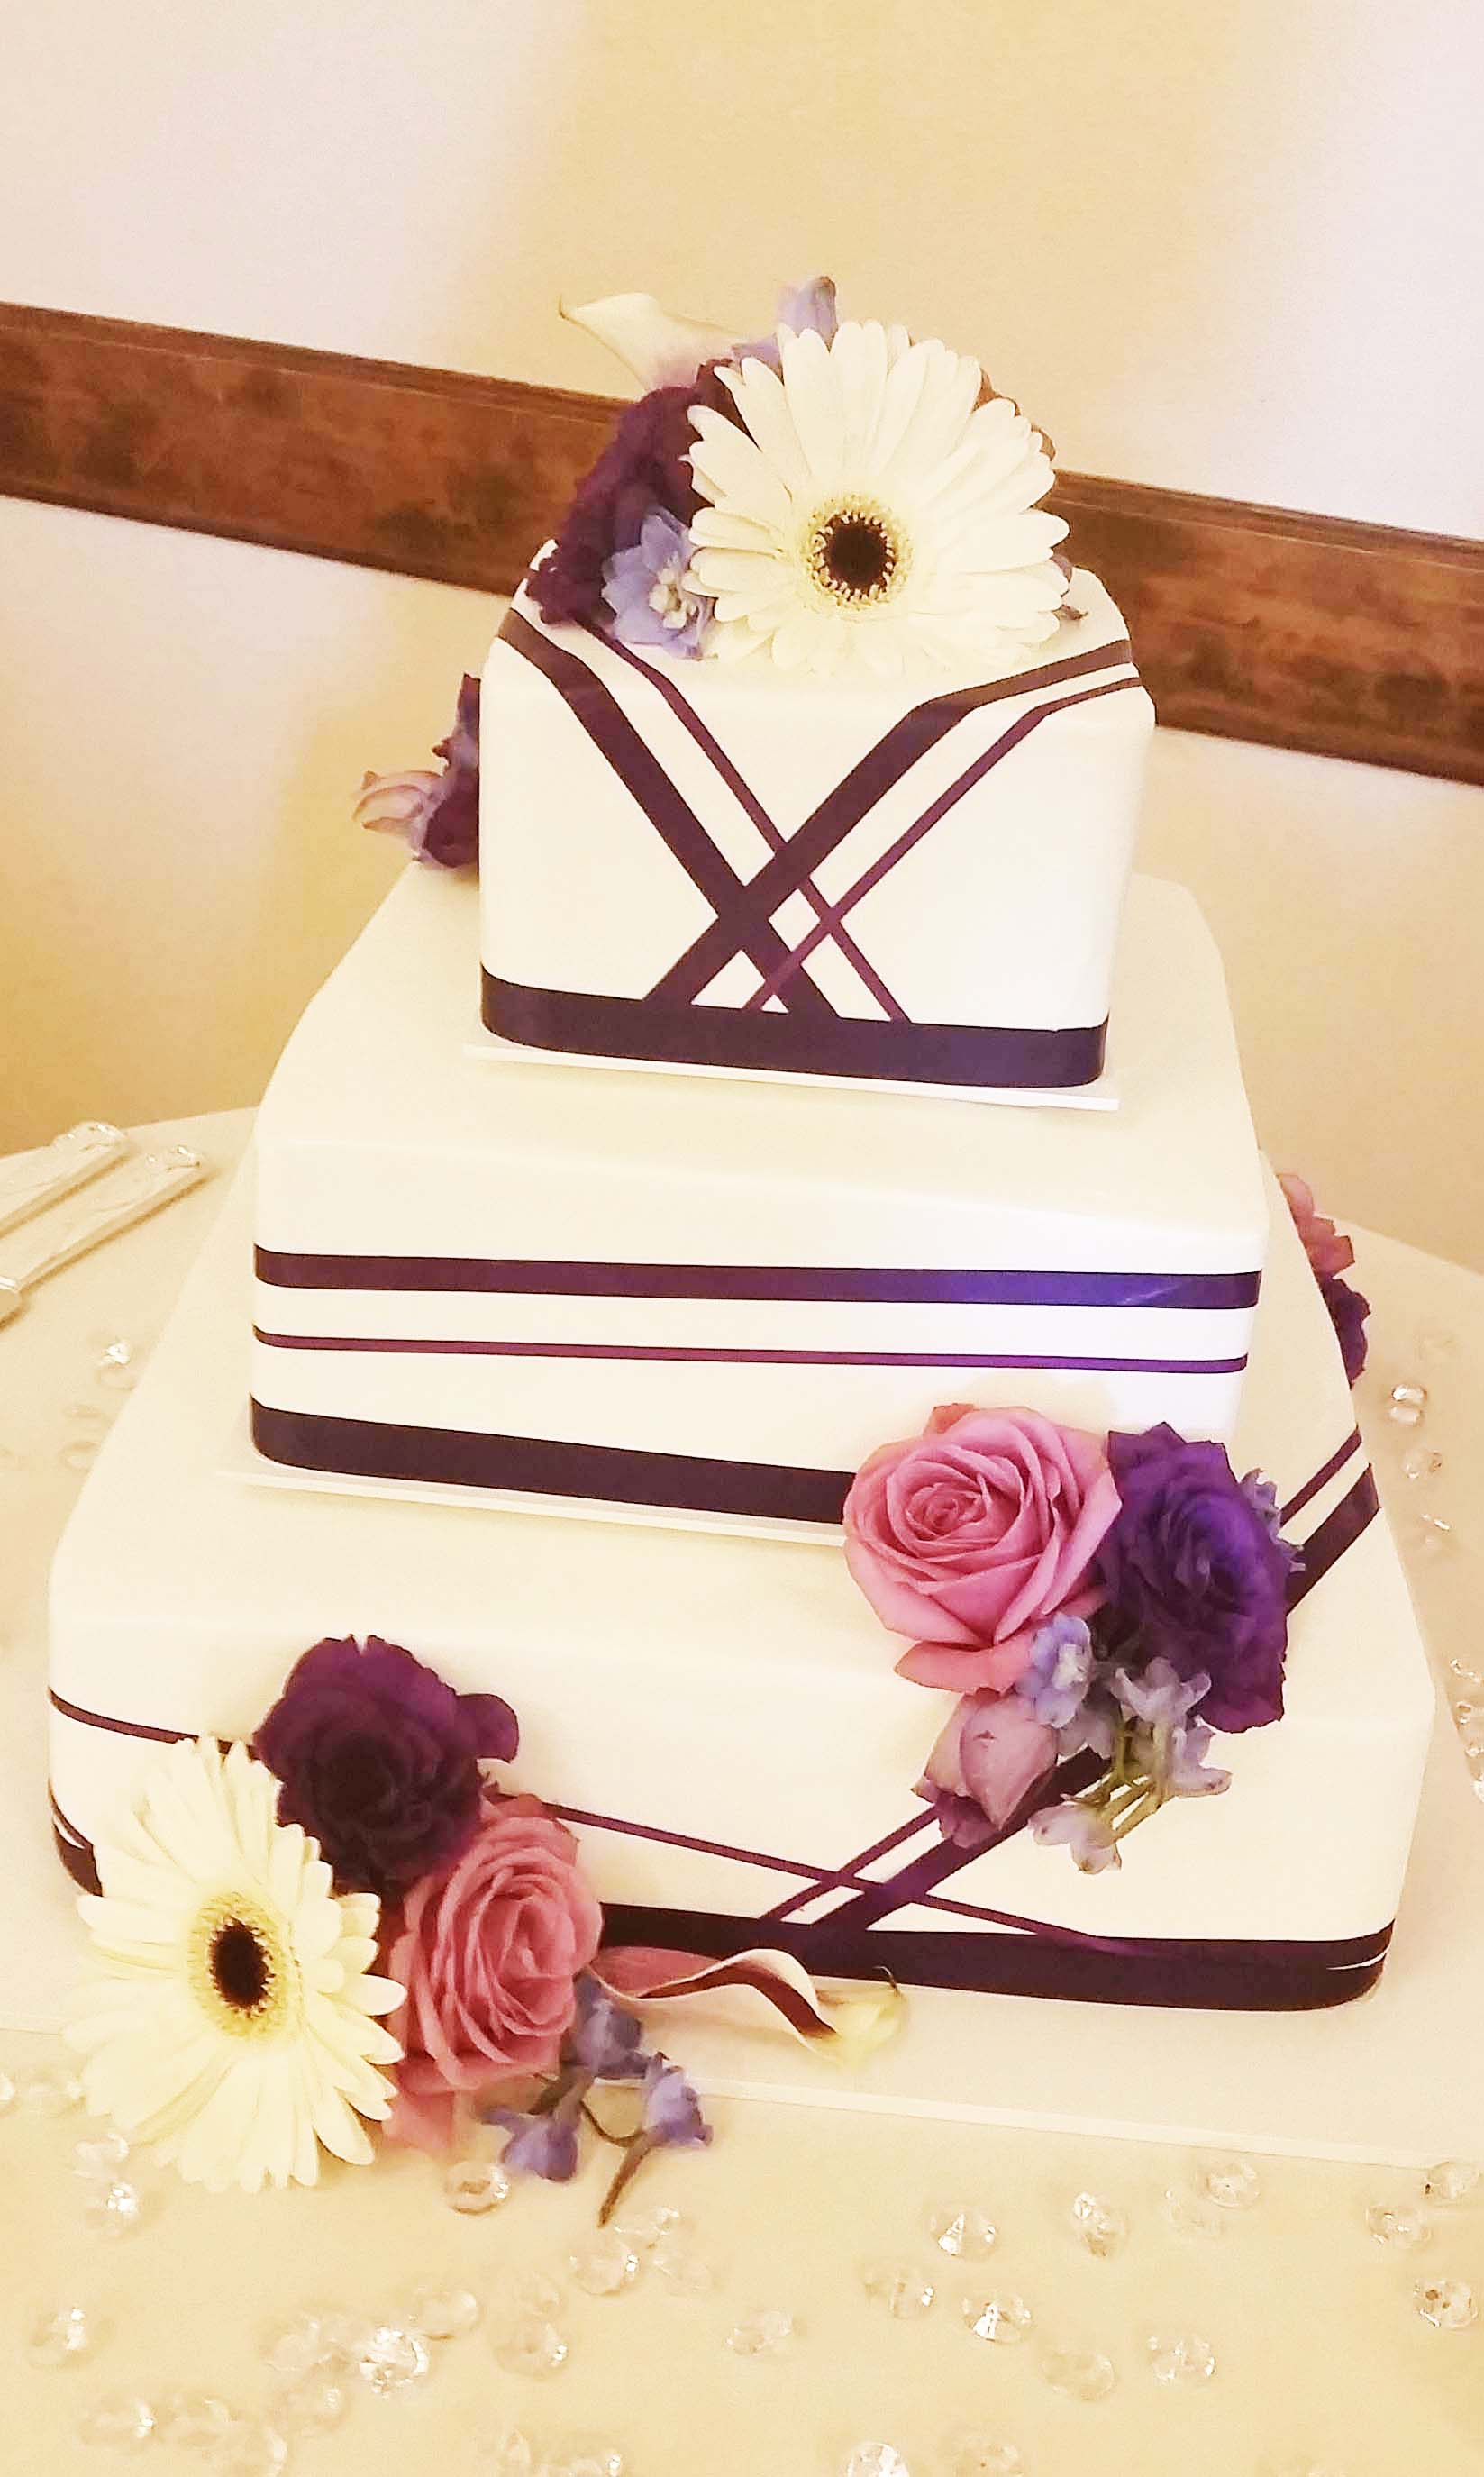 CA0169-Shades of Purple and White Wedding Cake Floral